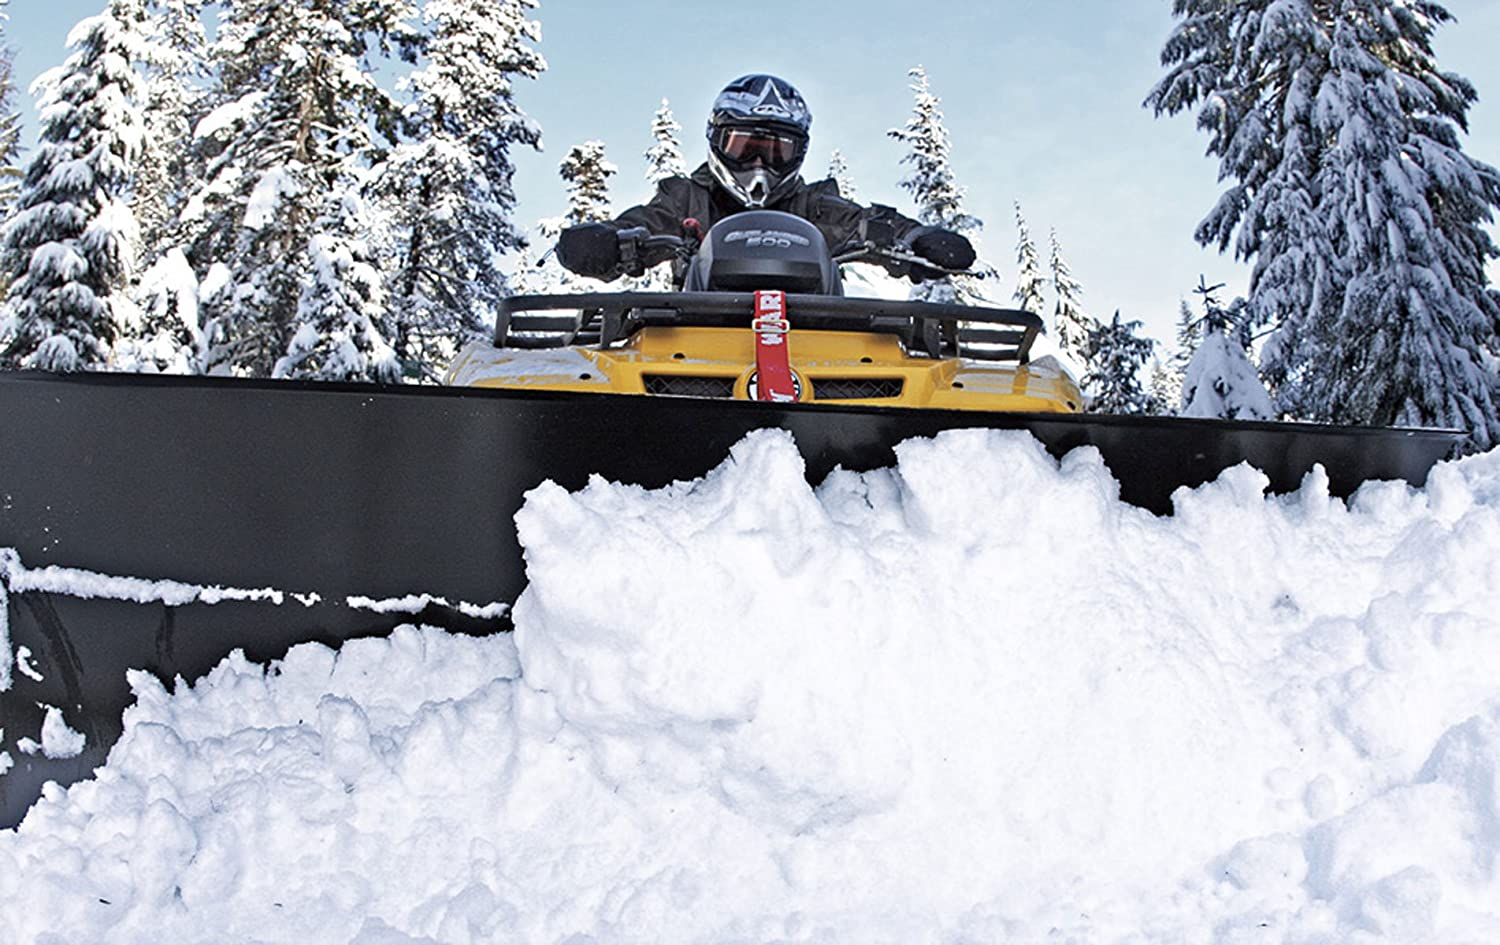 The Best 5 Snow Plow | Reviews & Buying Guide 4